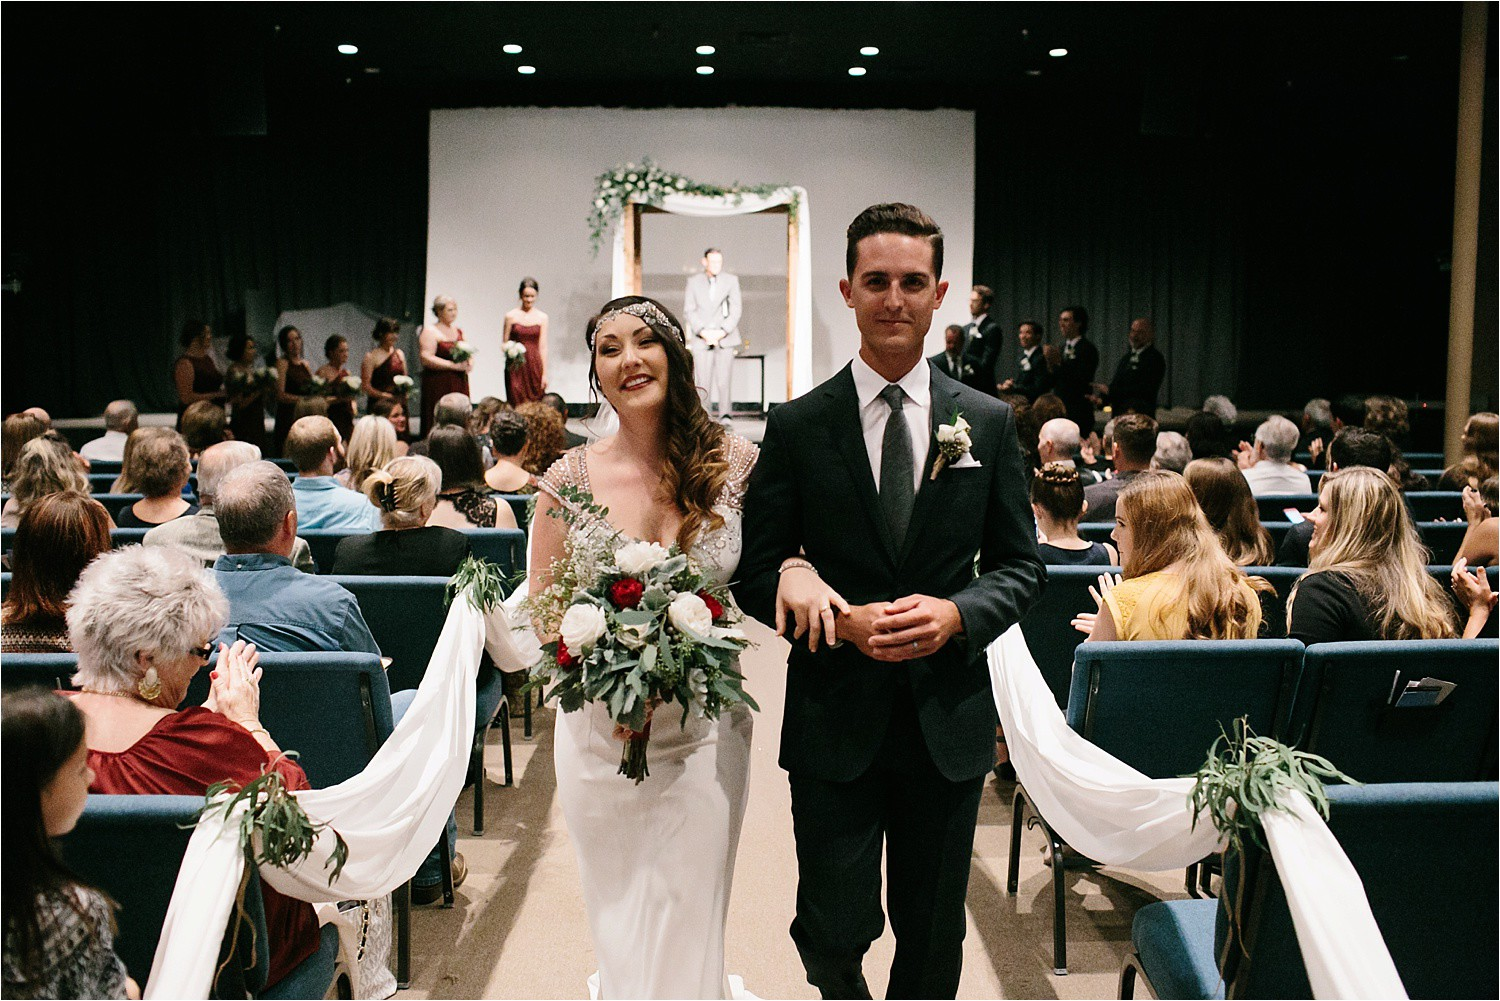 whittney-drew-__-an-intimate-wine-and-navy-wedding-in-an-industrial-venue-at-loft-123-in-paris-tx-by-north-texas-wedding-photographer-rachel-meagan-photography-_-065